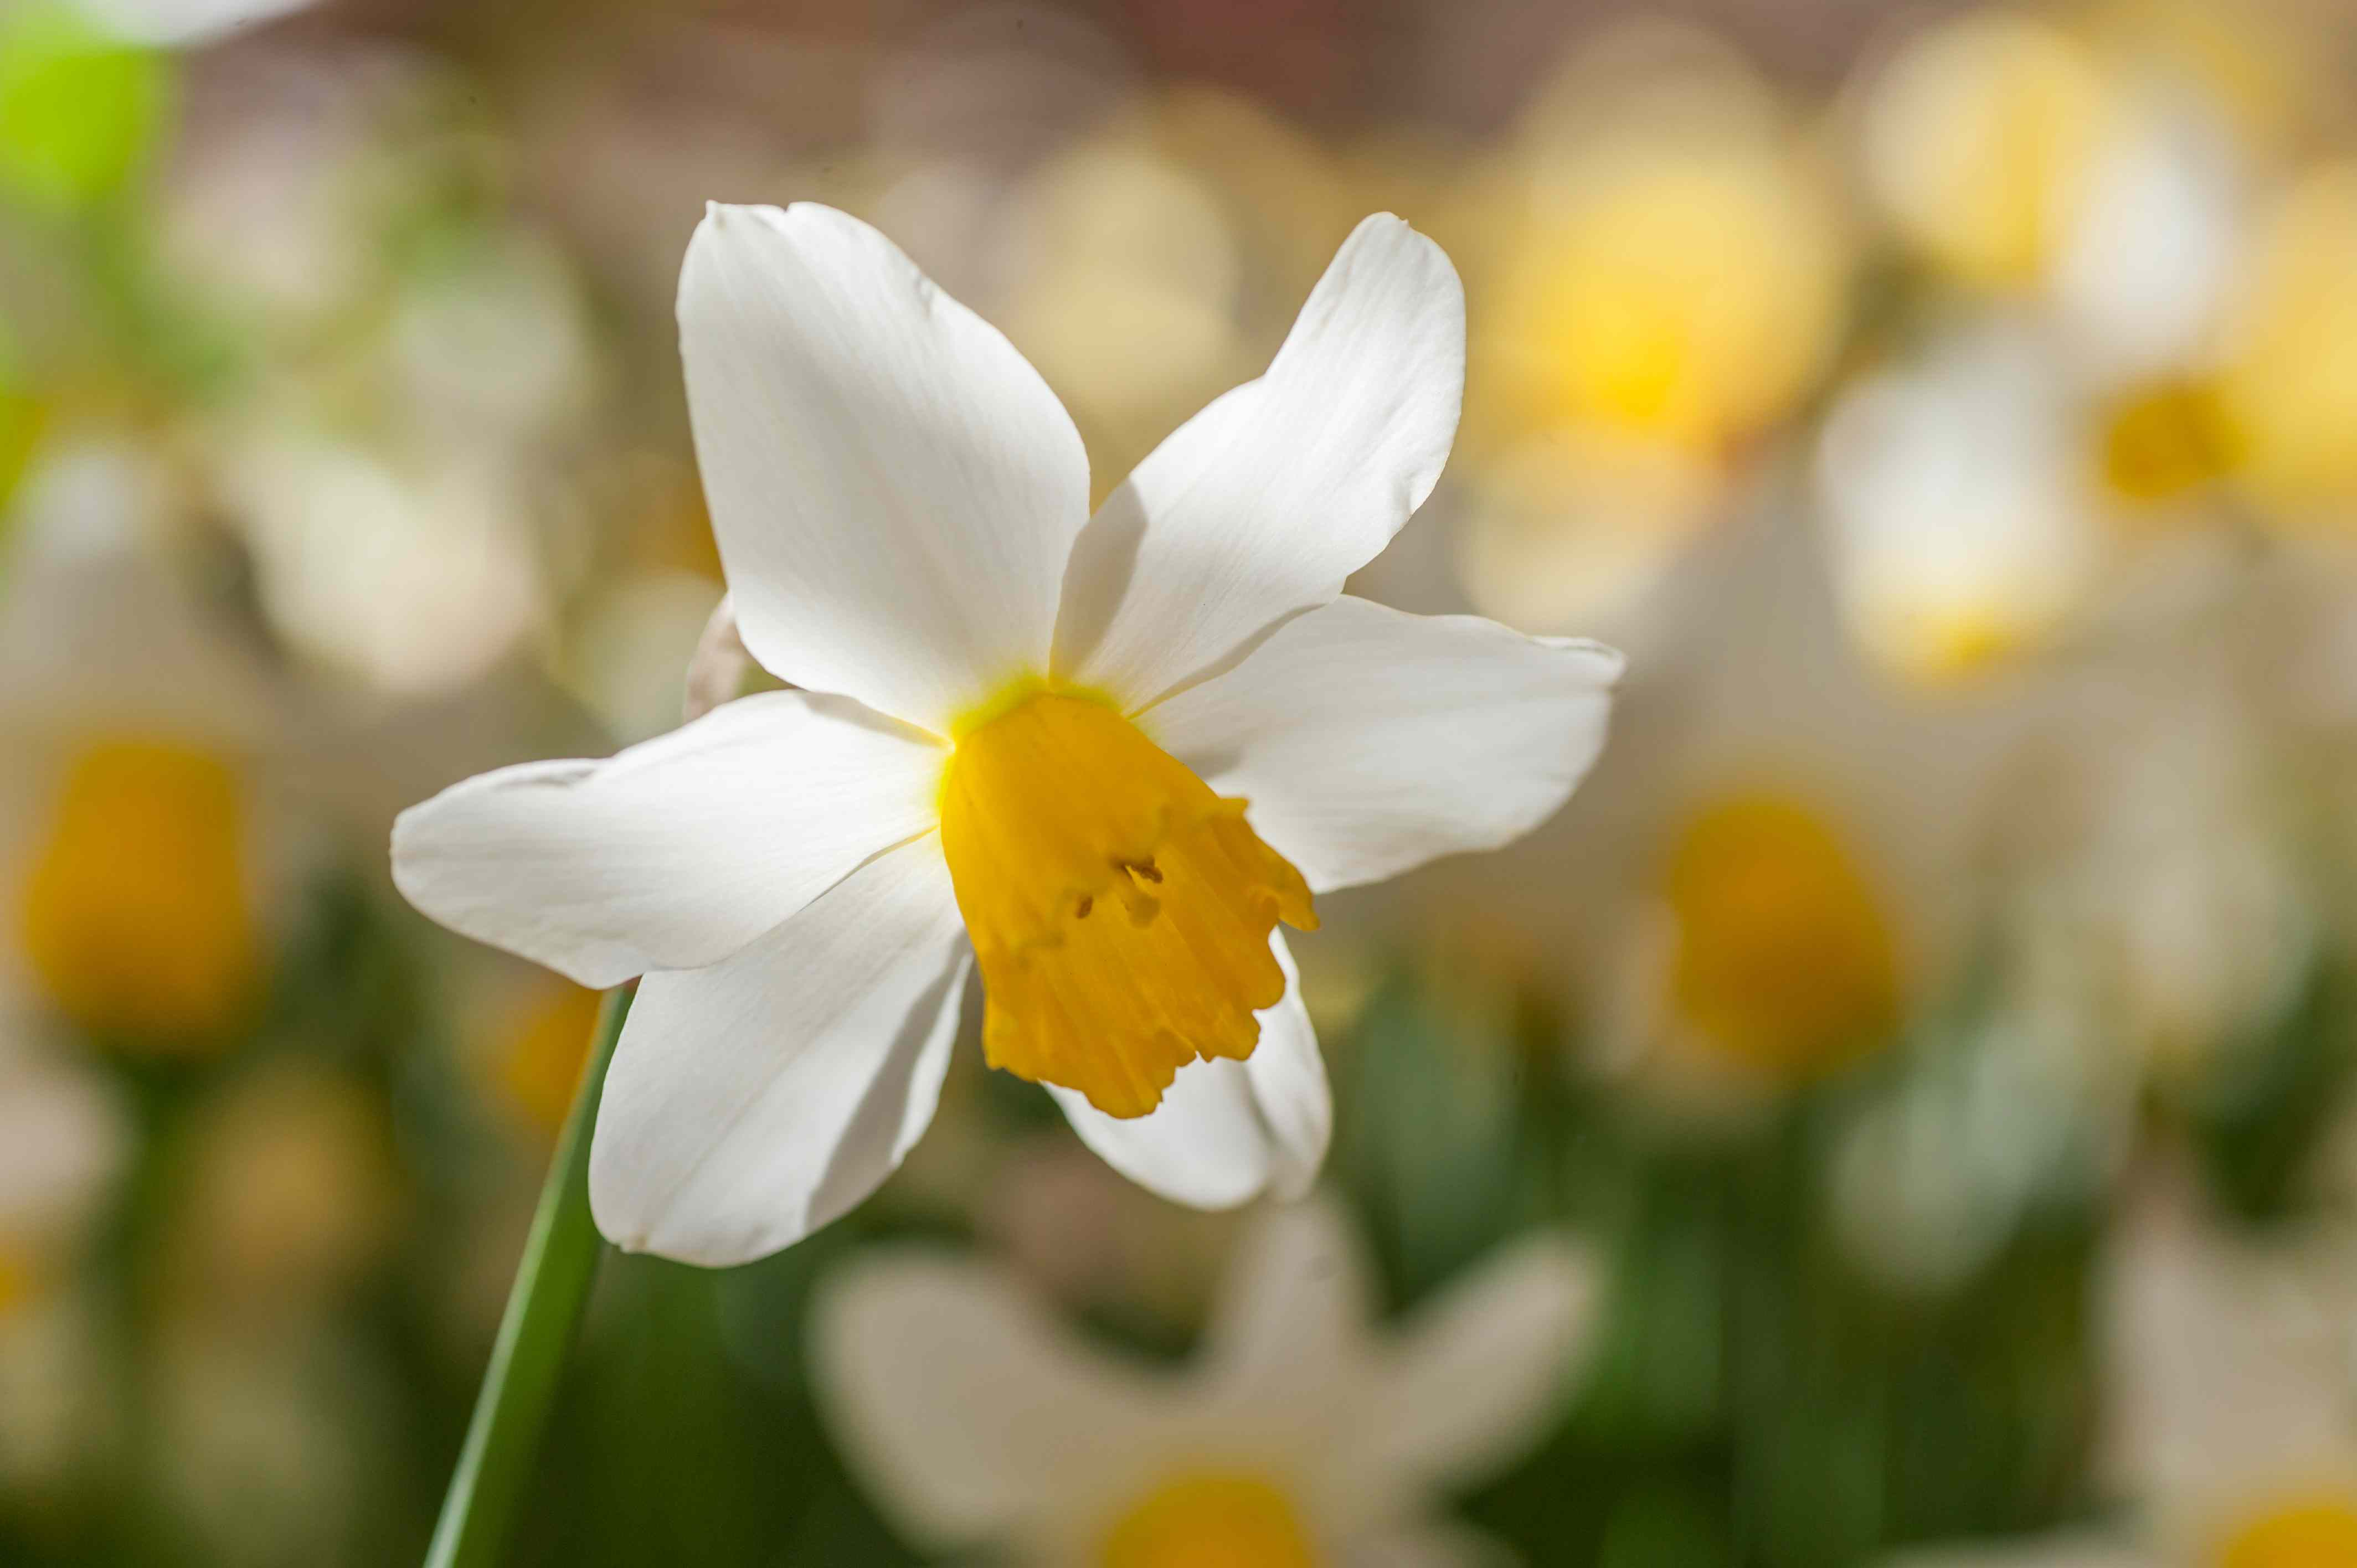 Cyclamineus daffodil with white petals and yellow cup